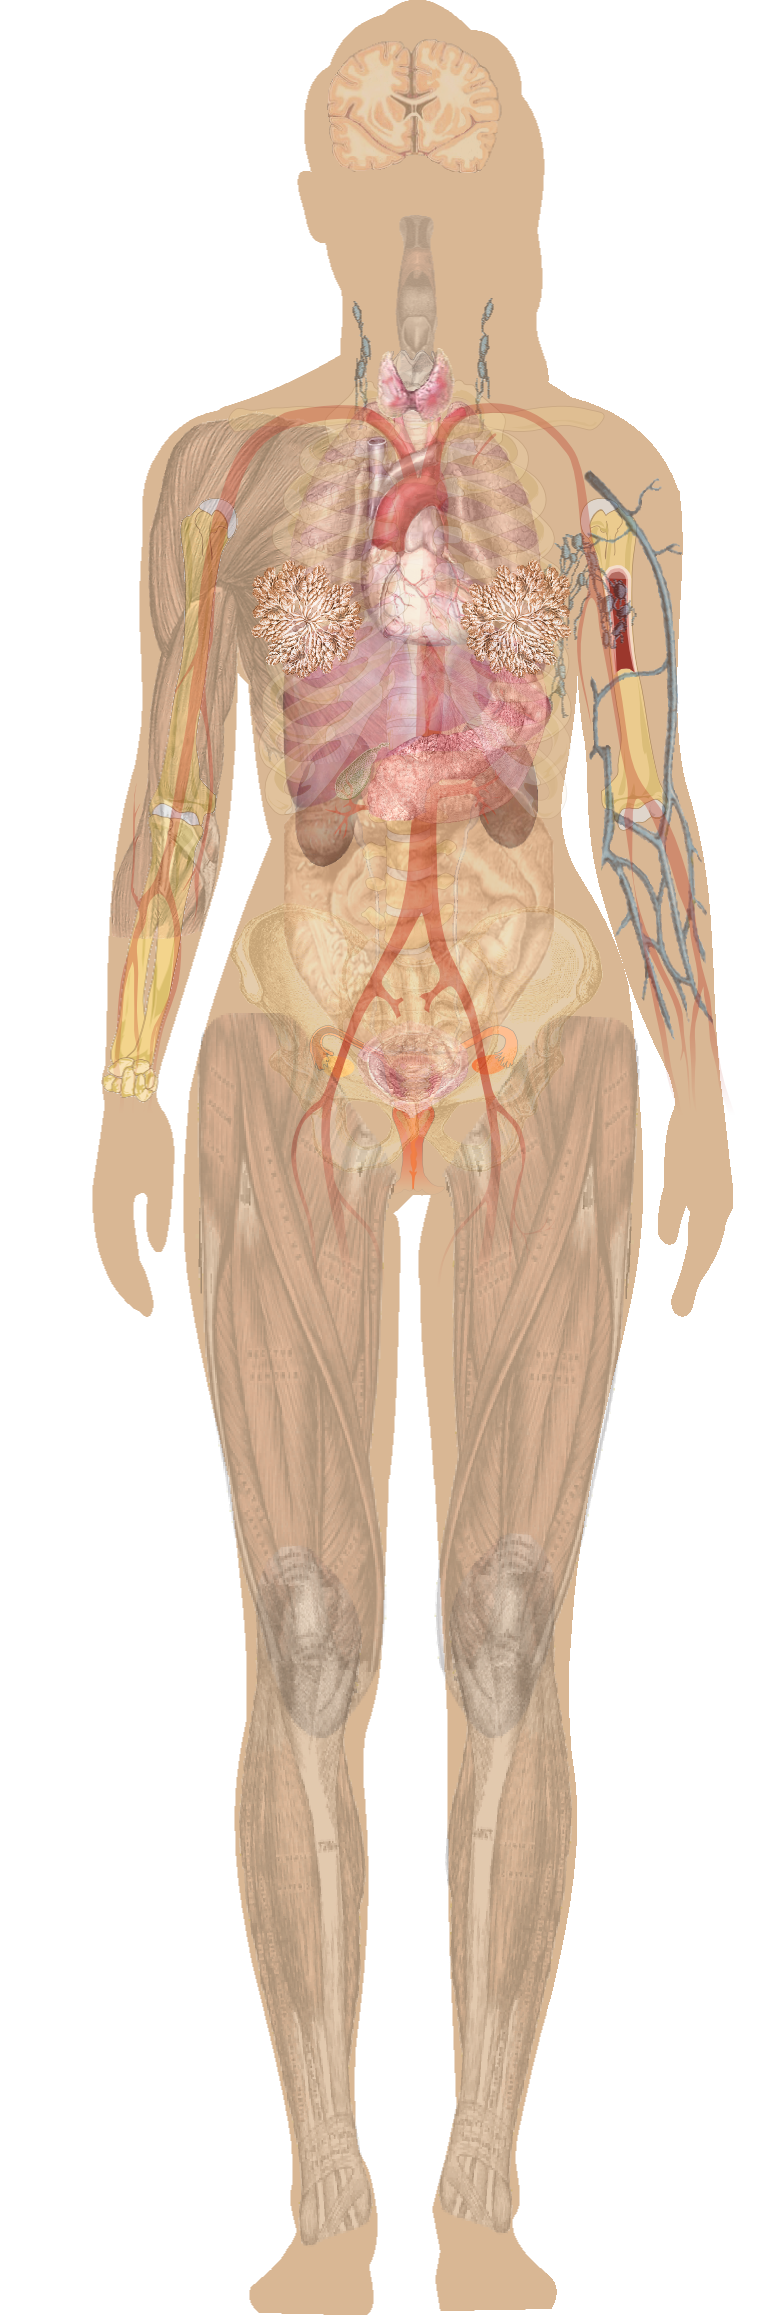 Human Body Diagram Organs Female